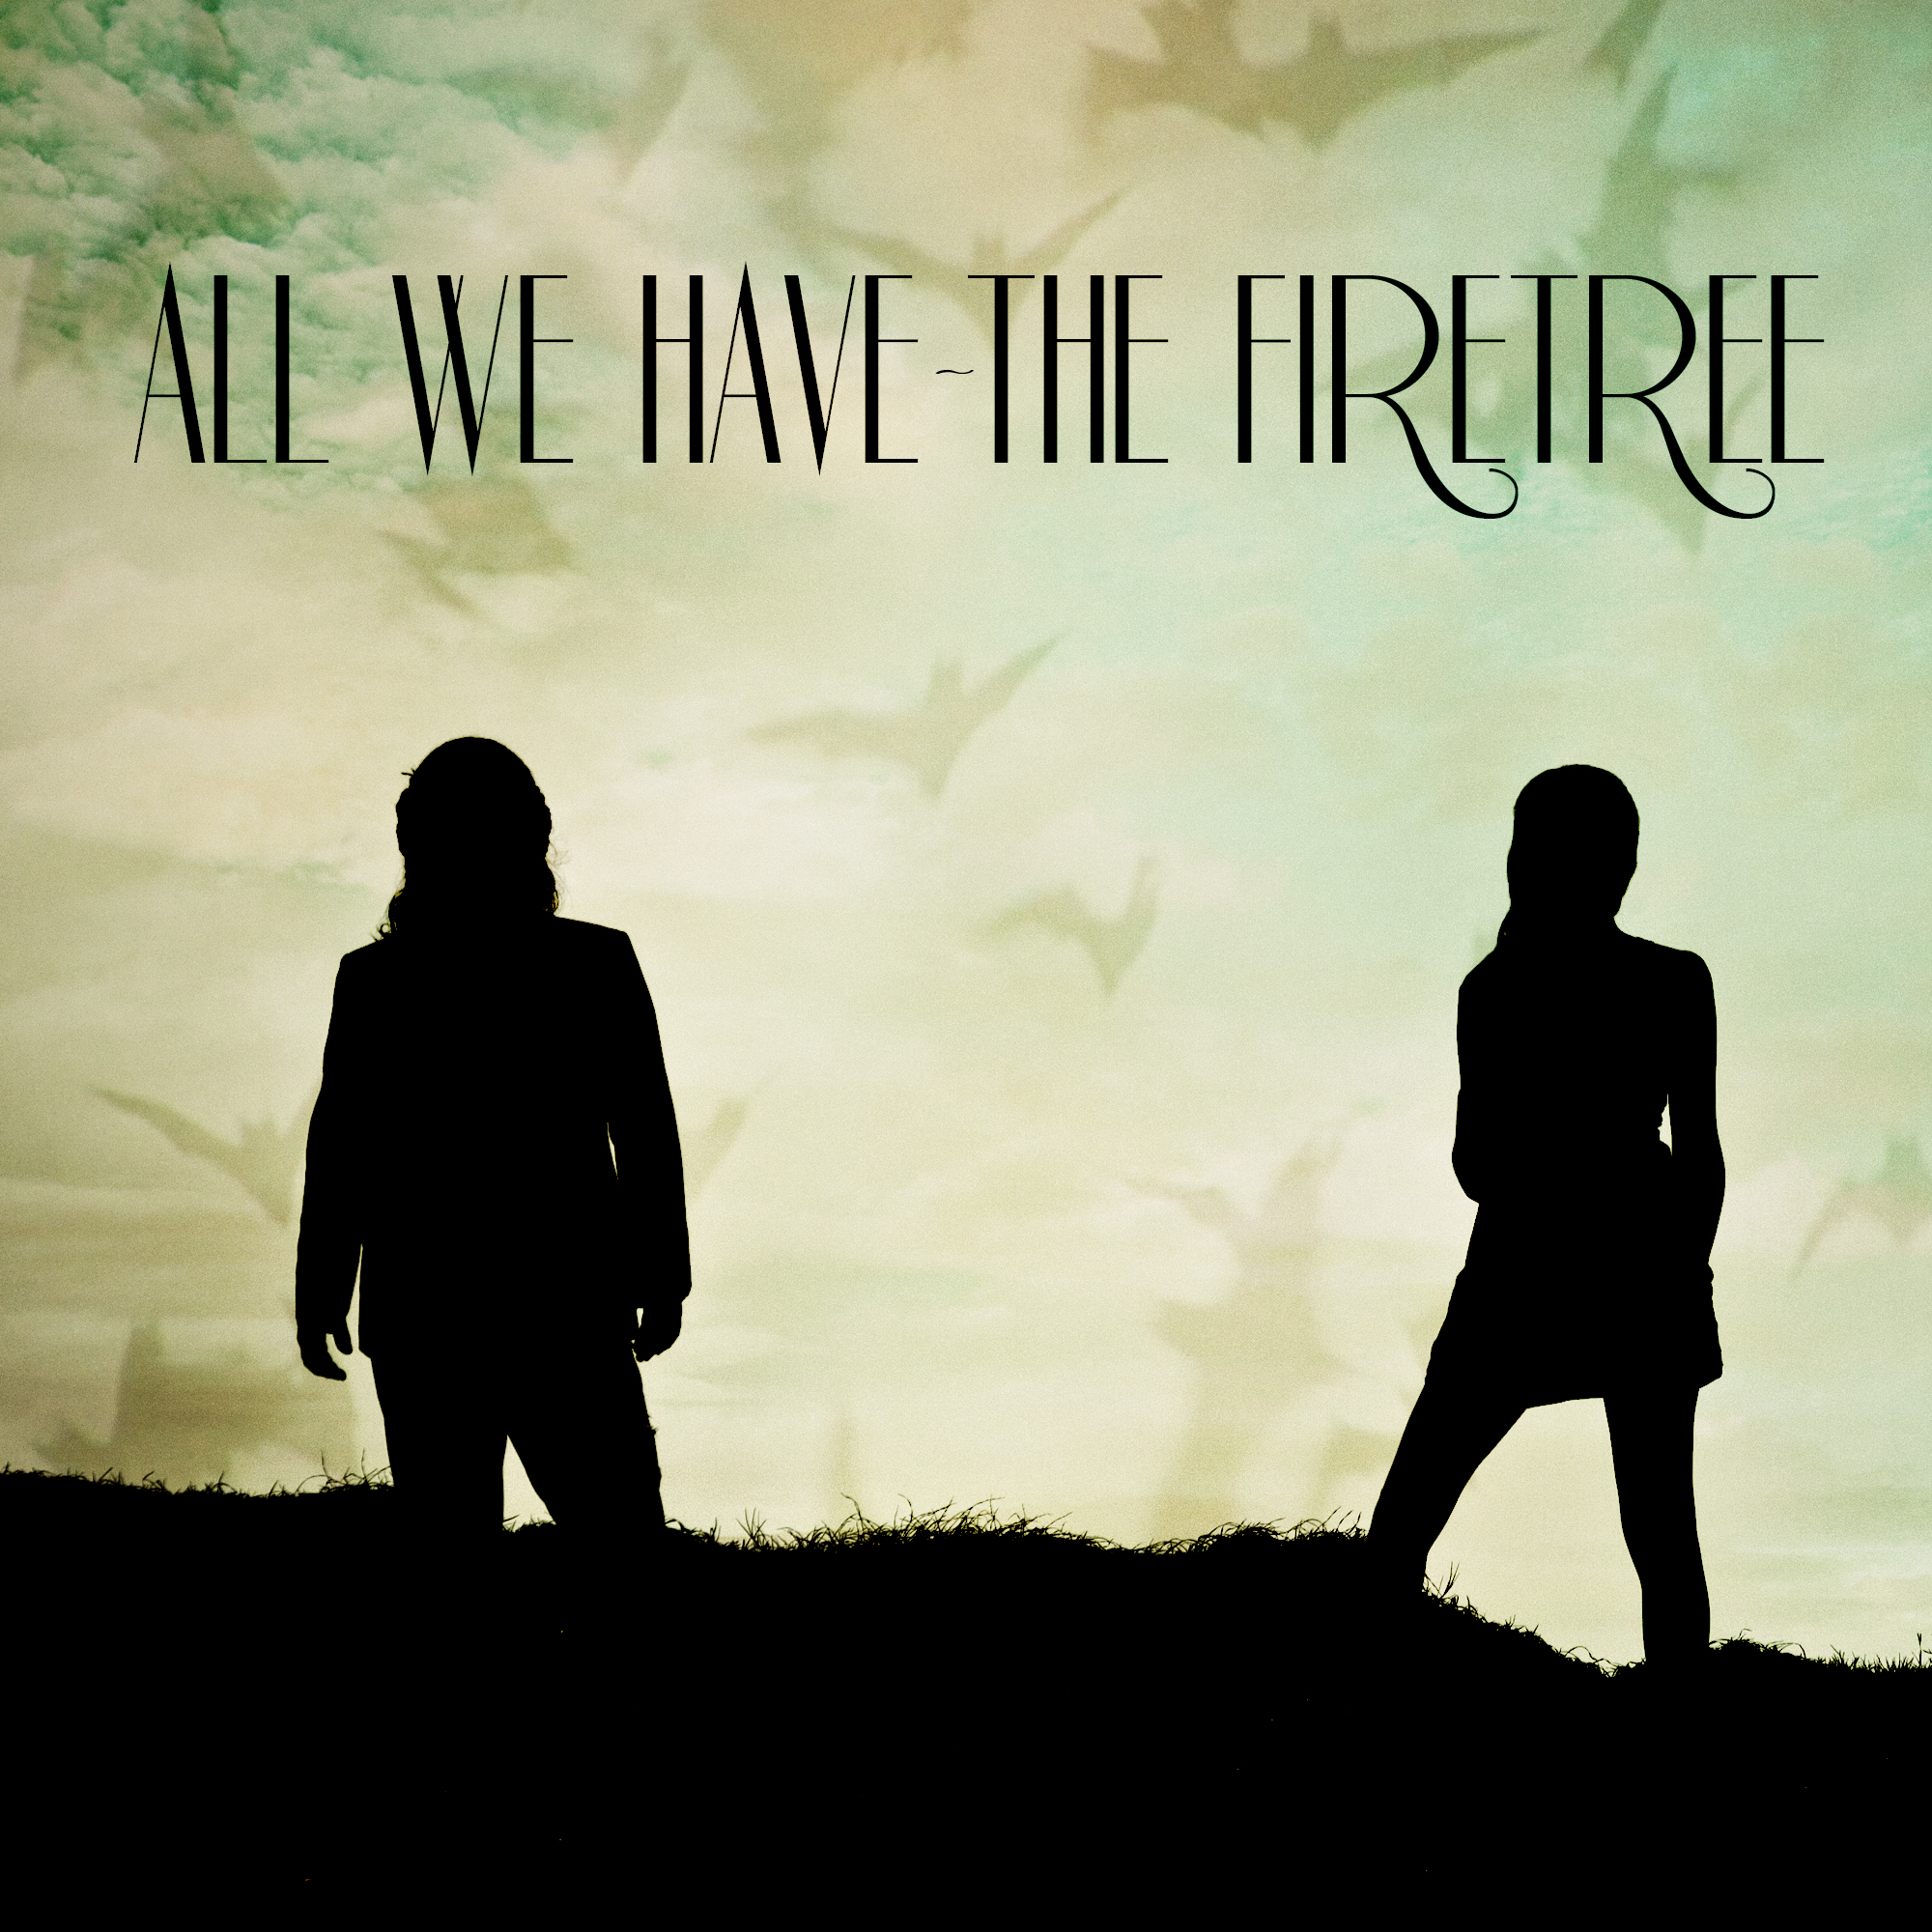 The Firetree - All We Have